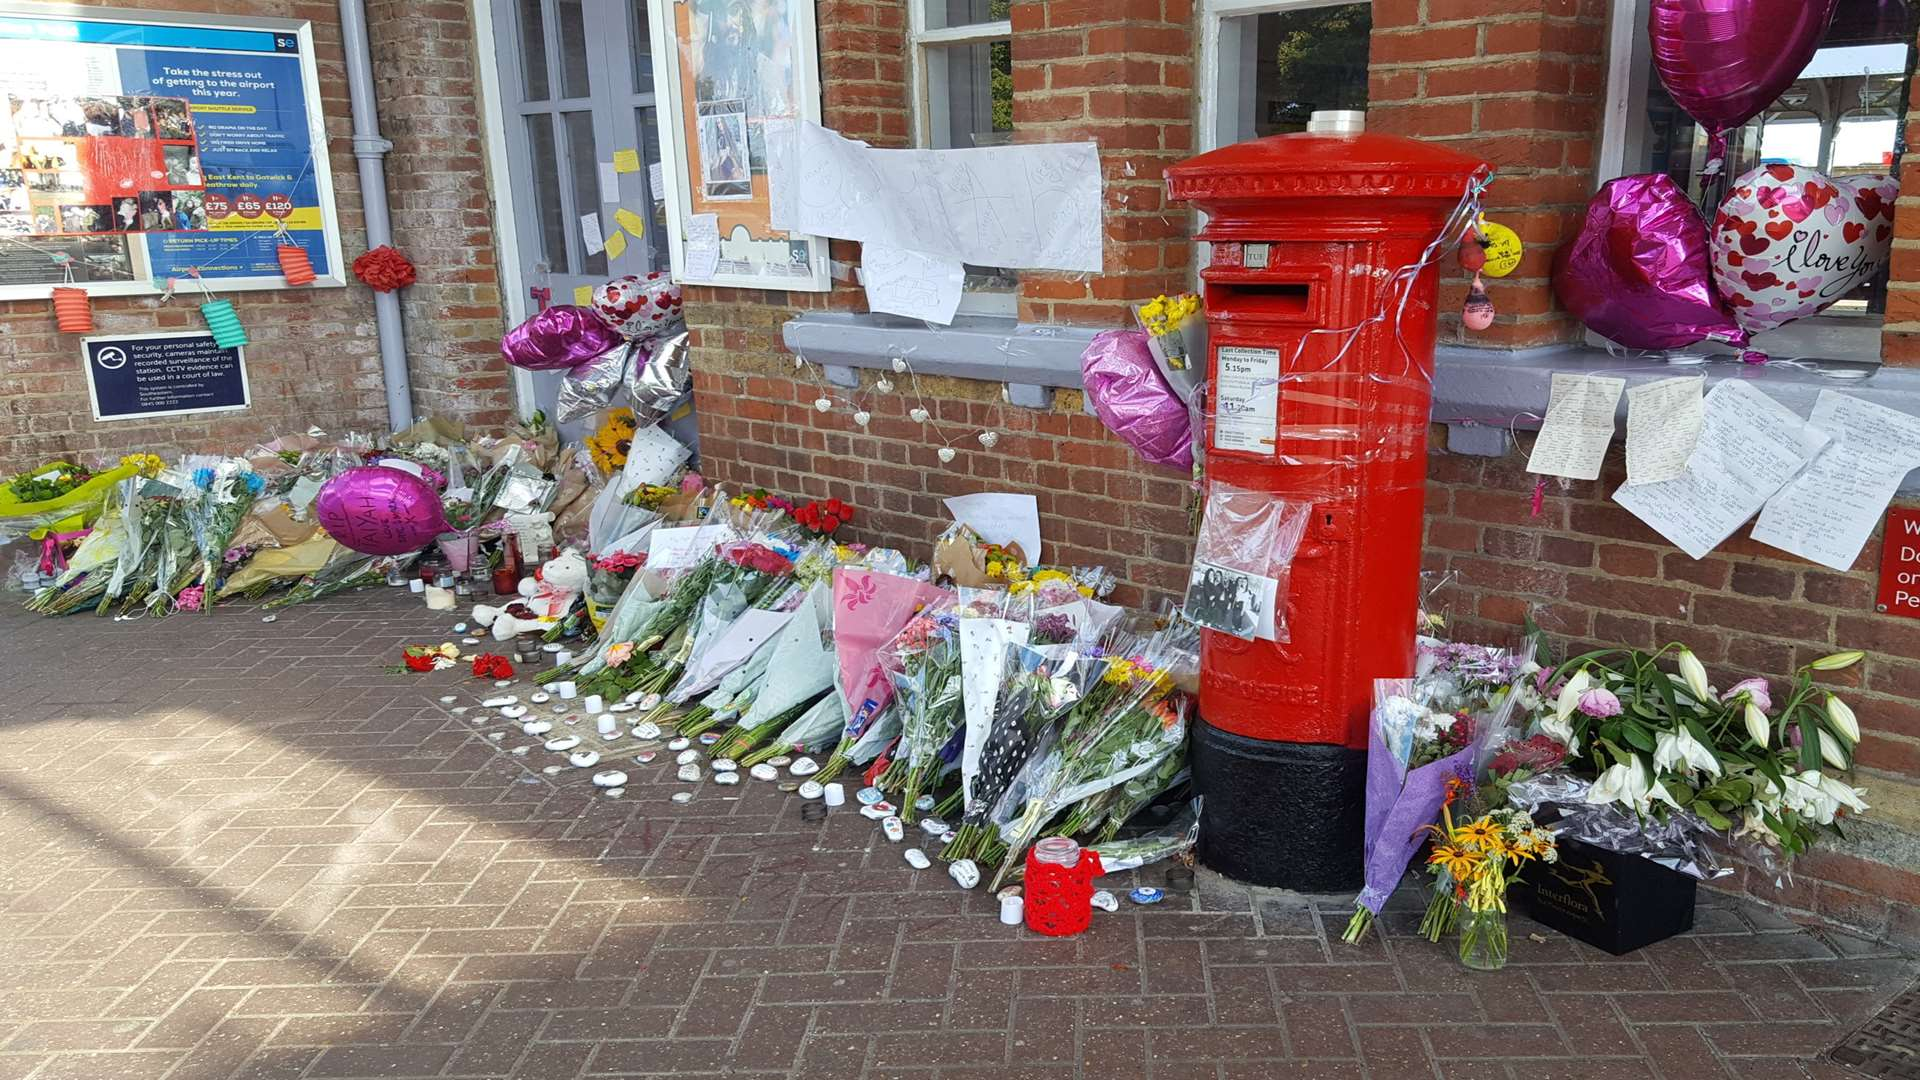 Flowers and messages for Taiyah-Grace Peebles at Herne Bay railway station